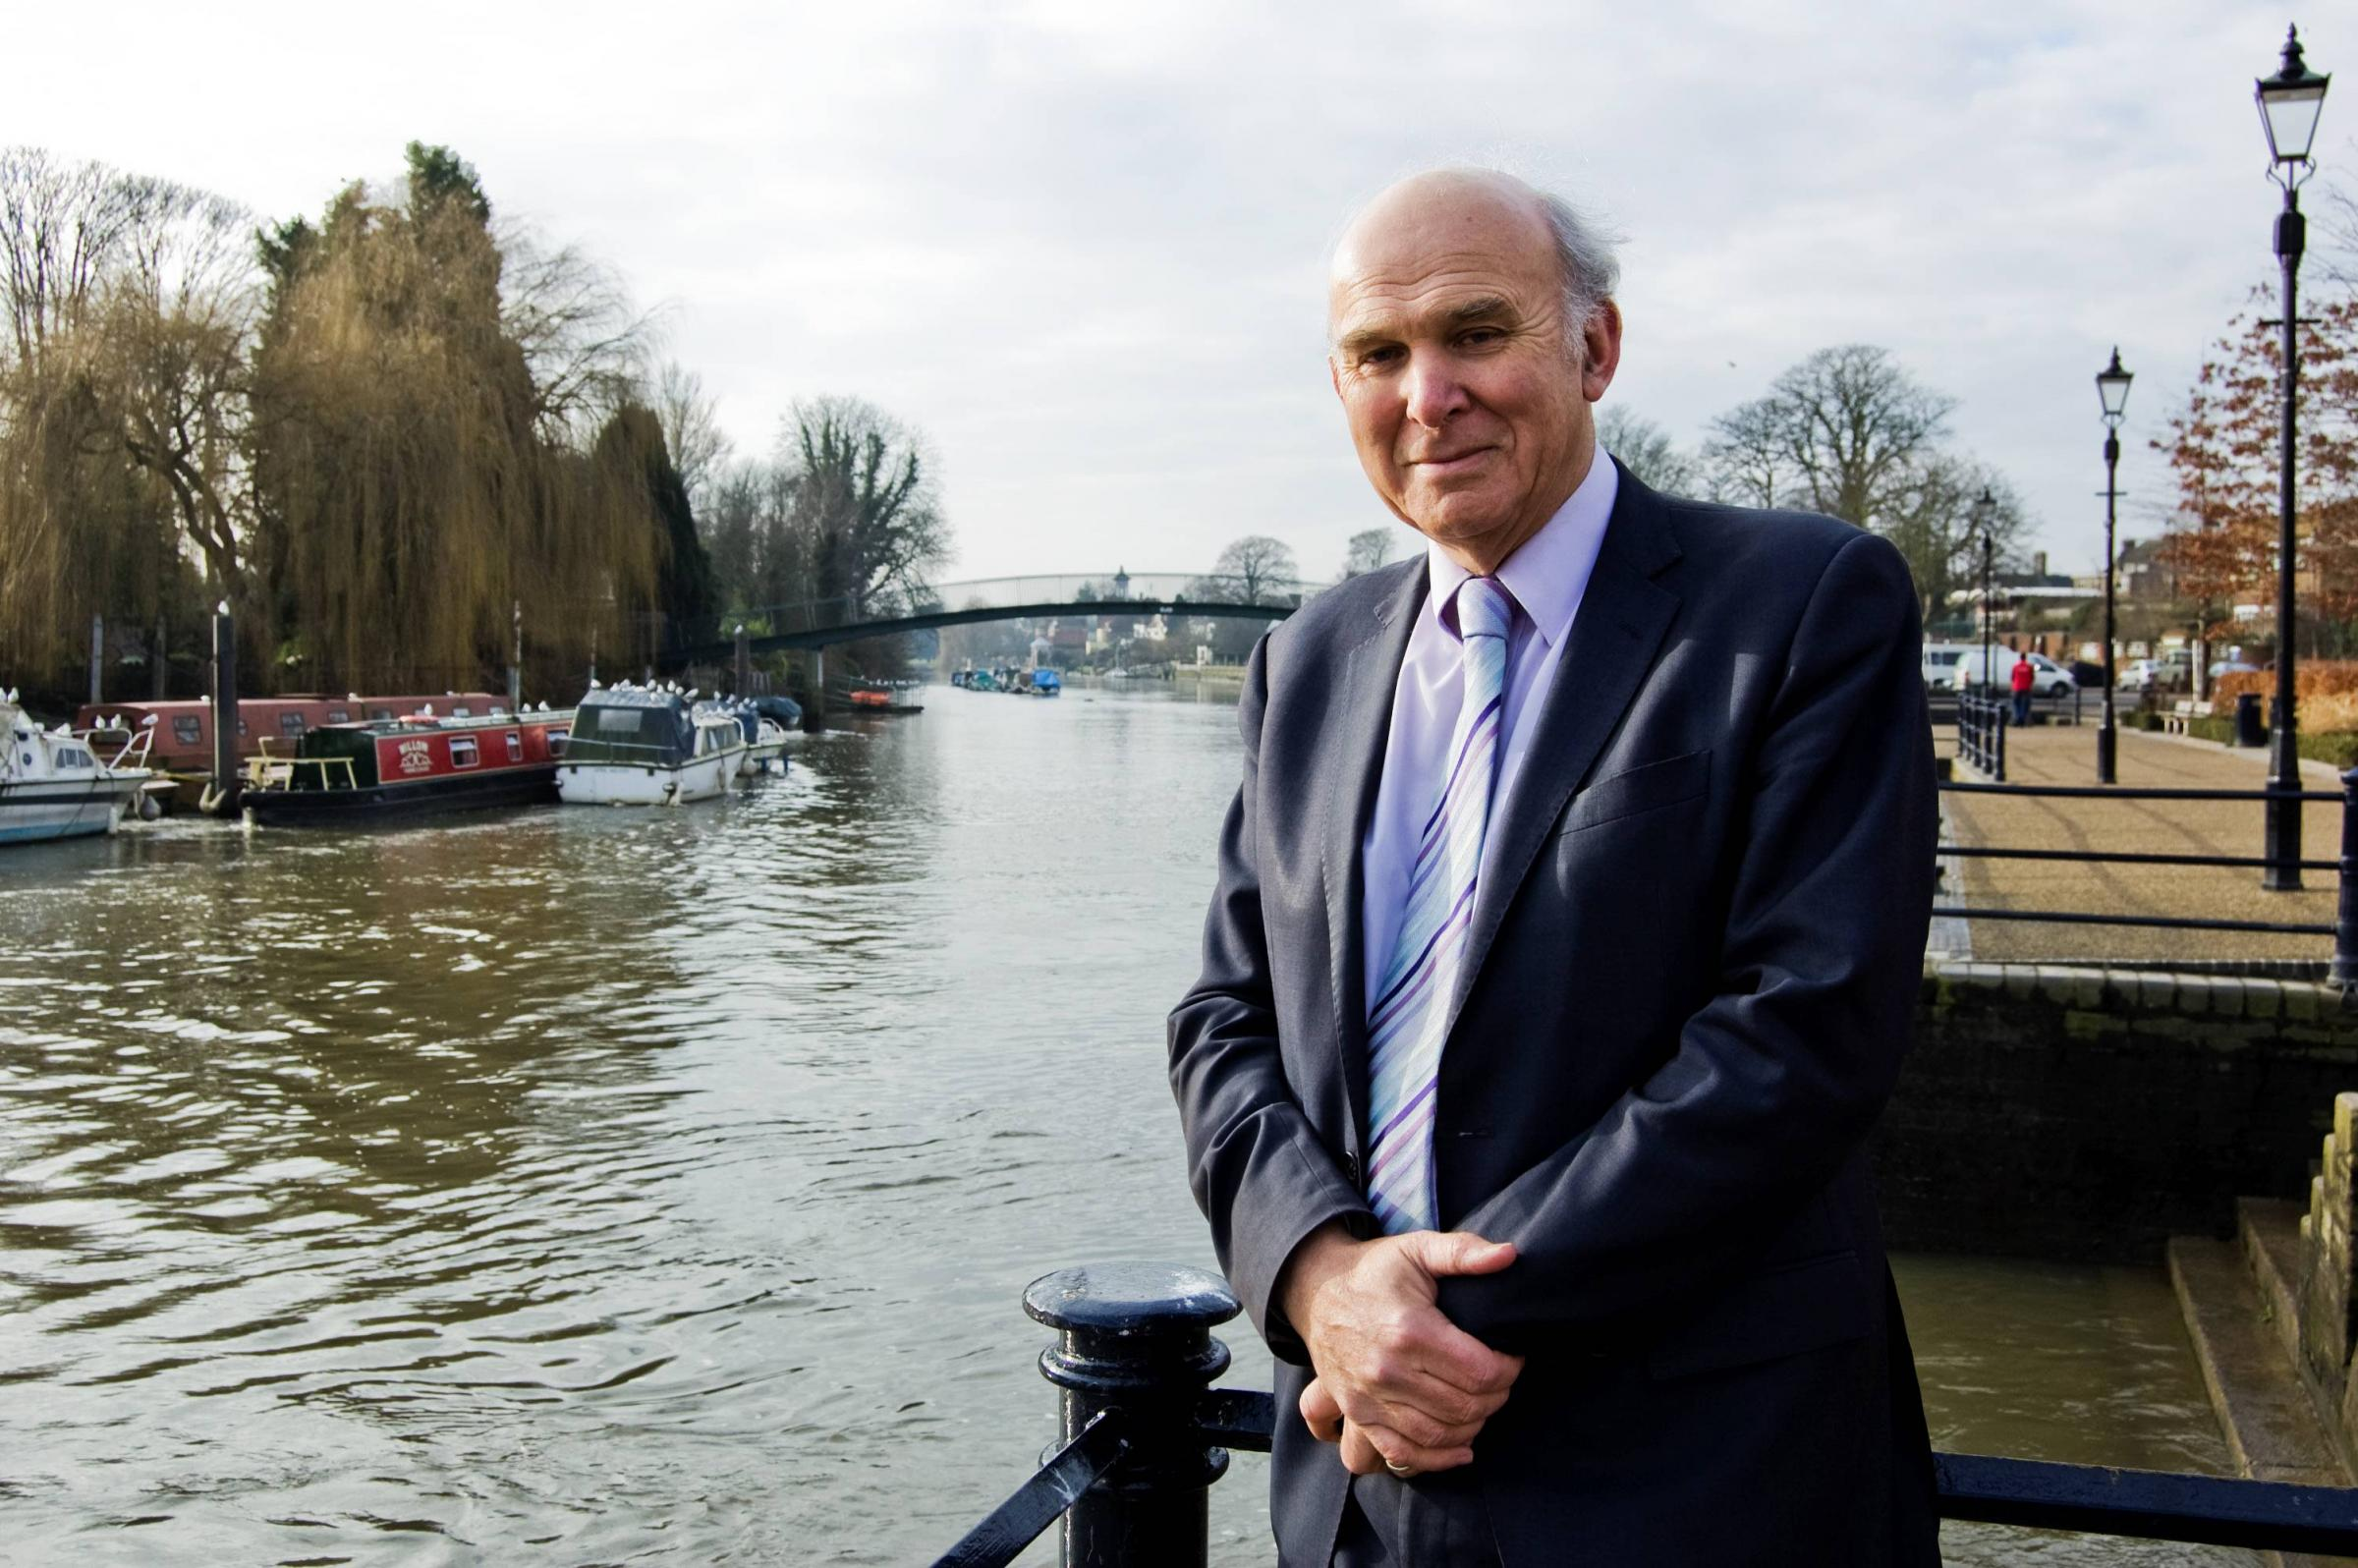 MP Vince Cable wishes RTT readers a Merry Christmas